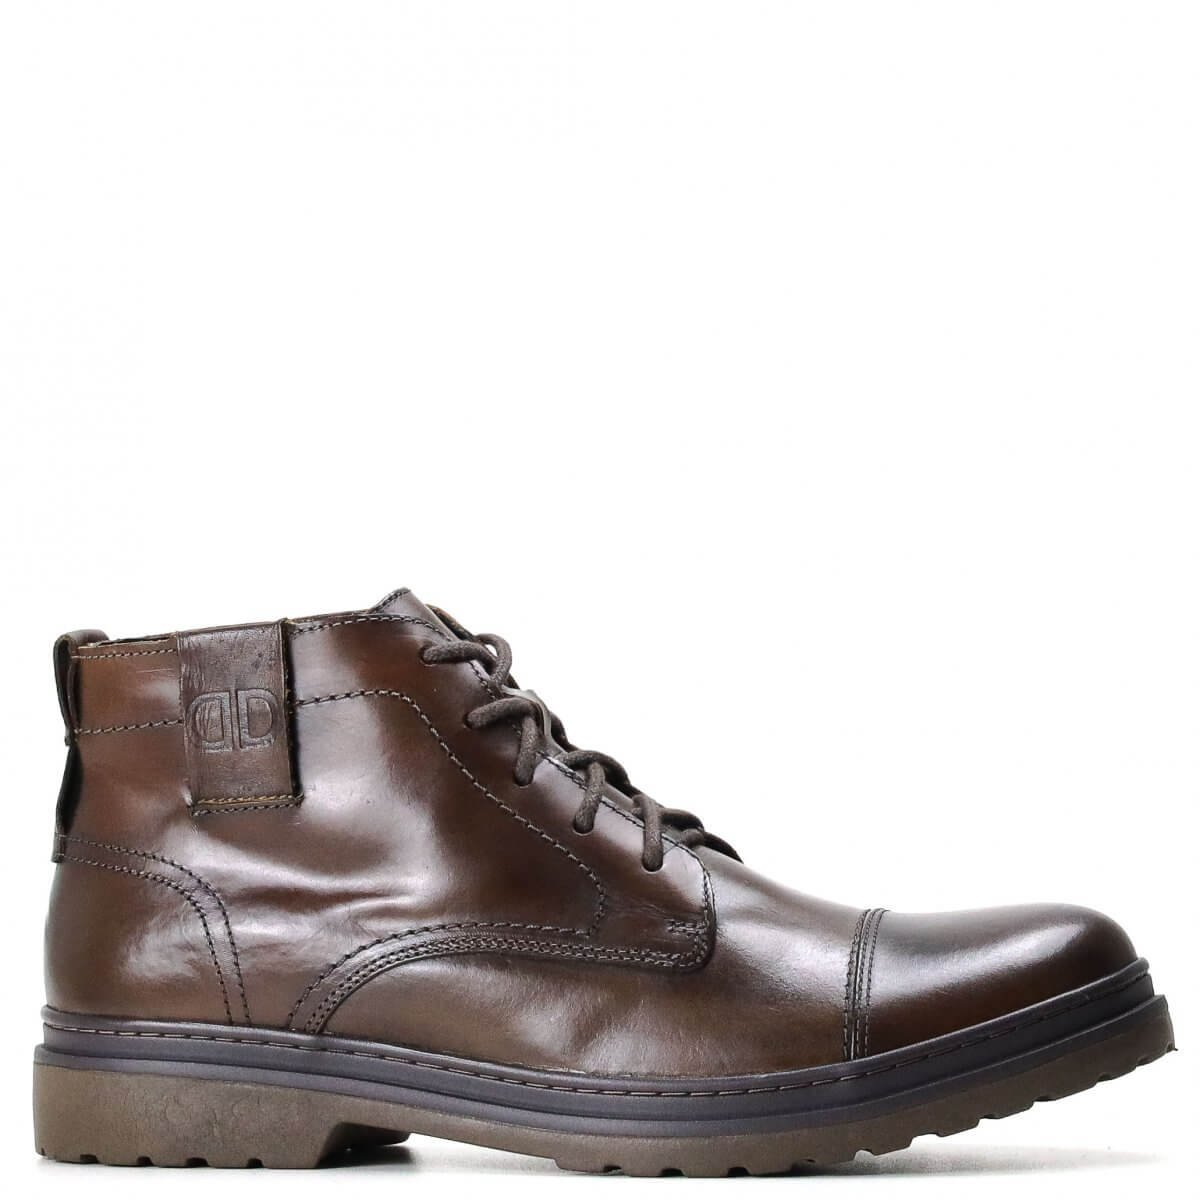 Bota Democrata Trooper Garage Marrom